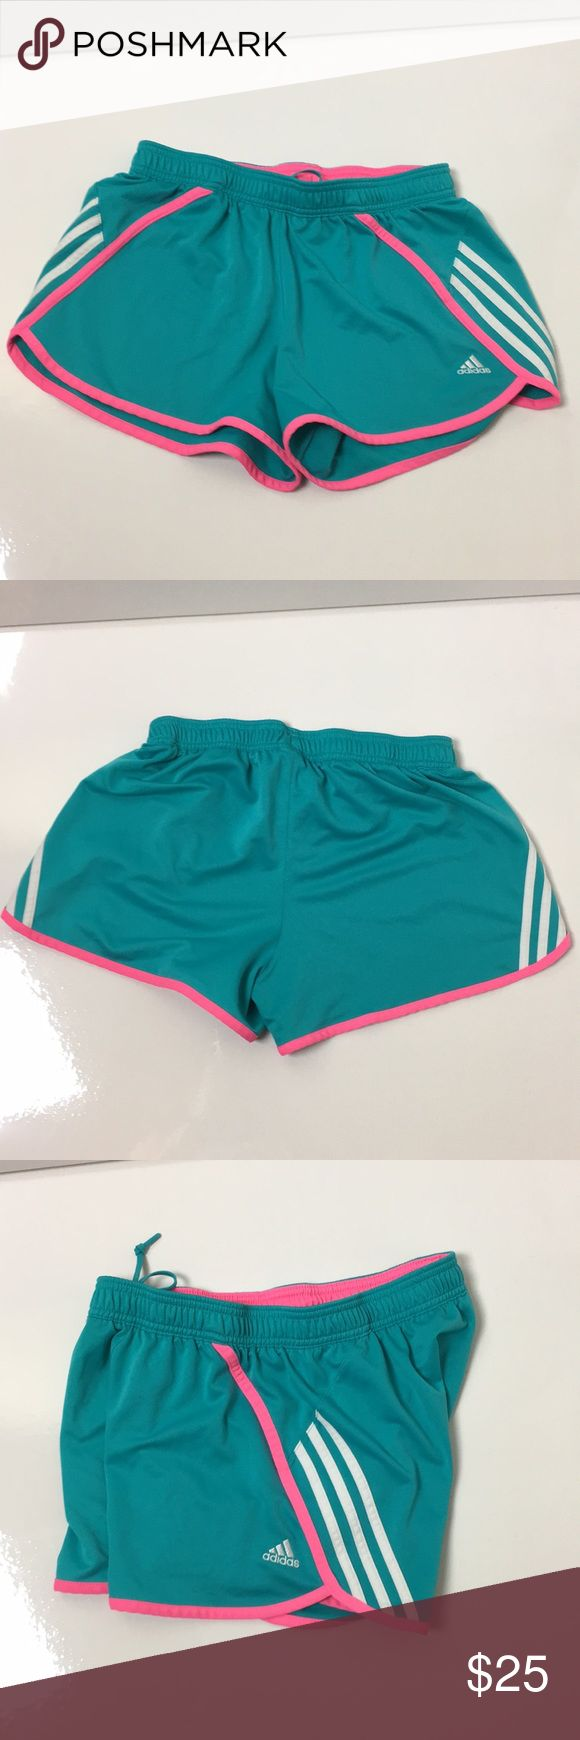 Adidas Neon Shorts Bright Blue and Neon Pink workout Shorts, white stripes, drawstring adidas Shorts